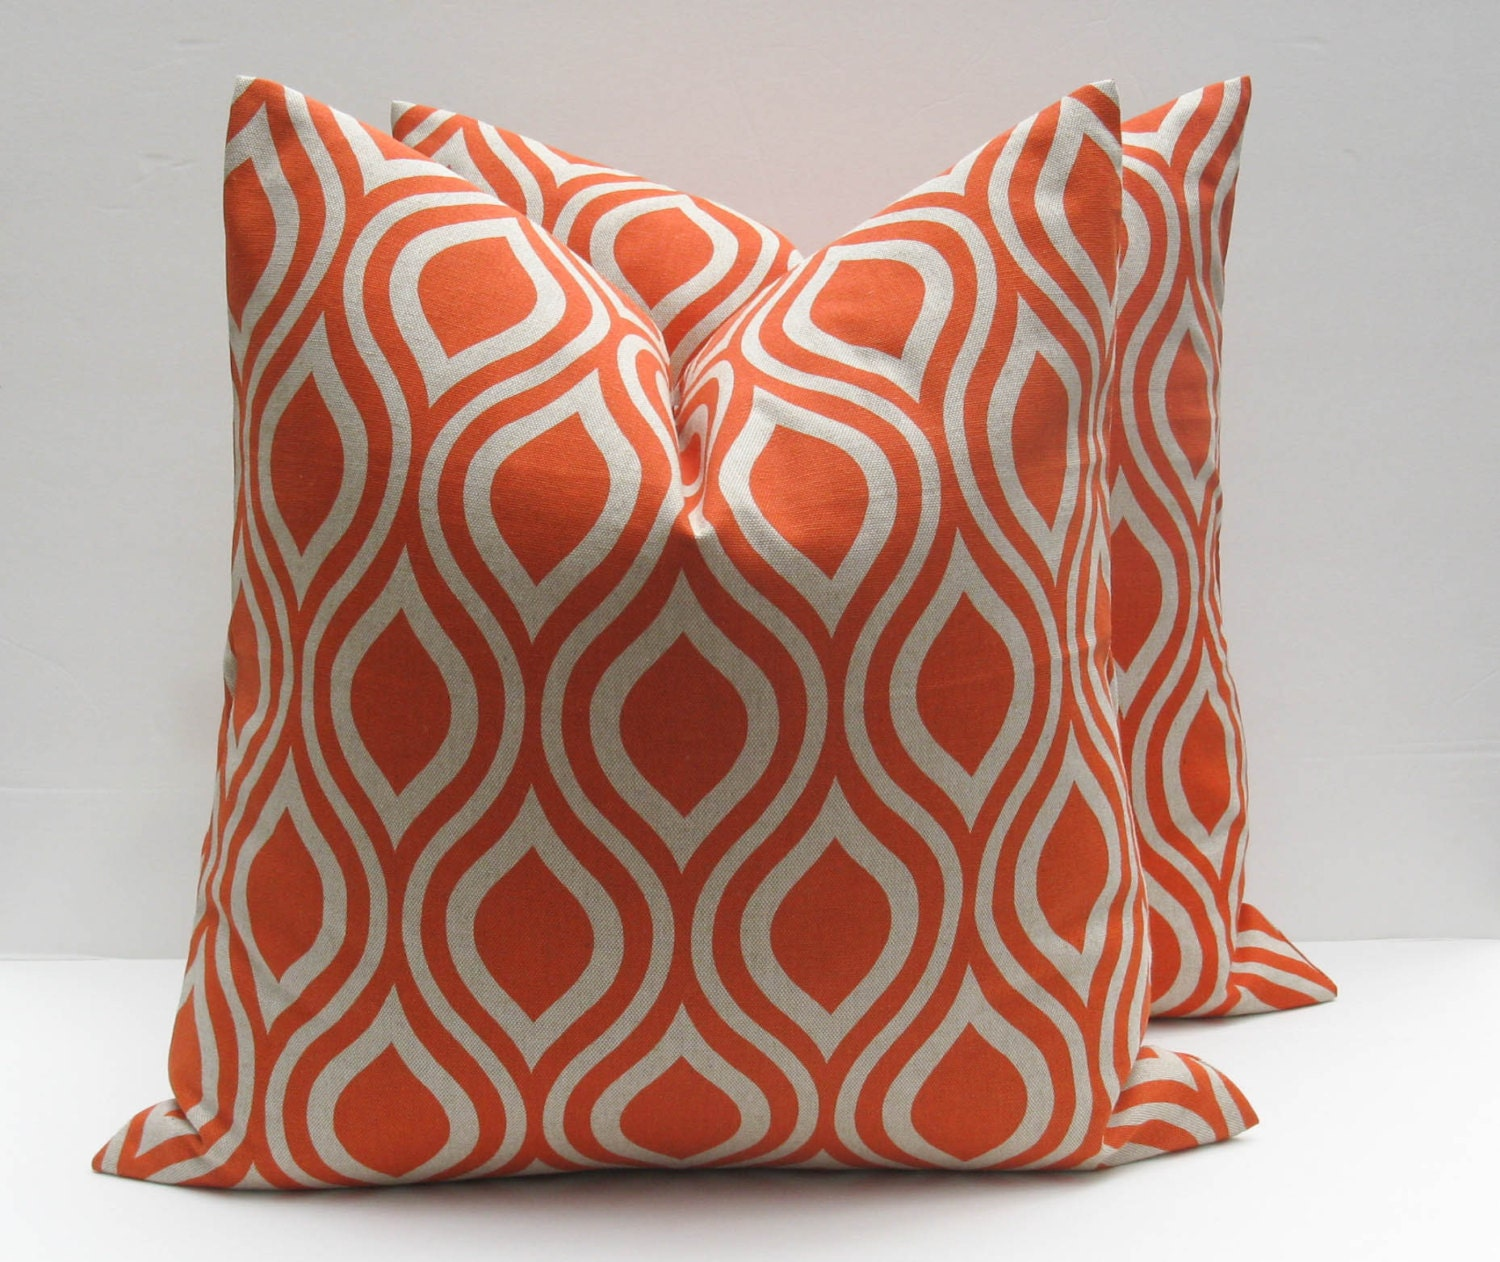 Throw Pillows With Orange : Decorative Throw Pillow Covers Orange Pillow 18x18 by EastAndNest